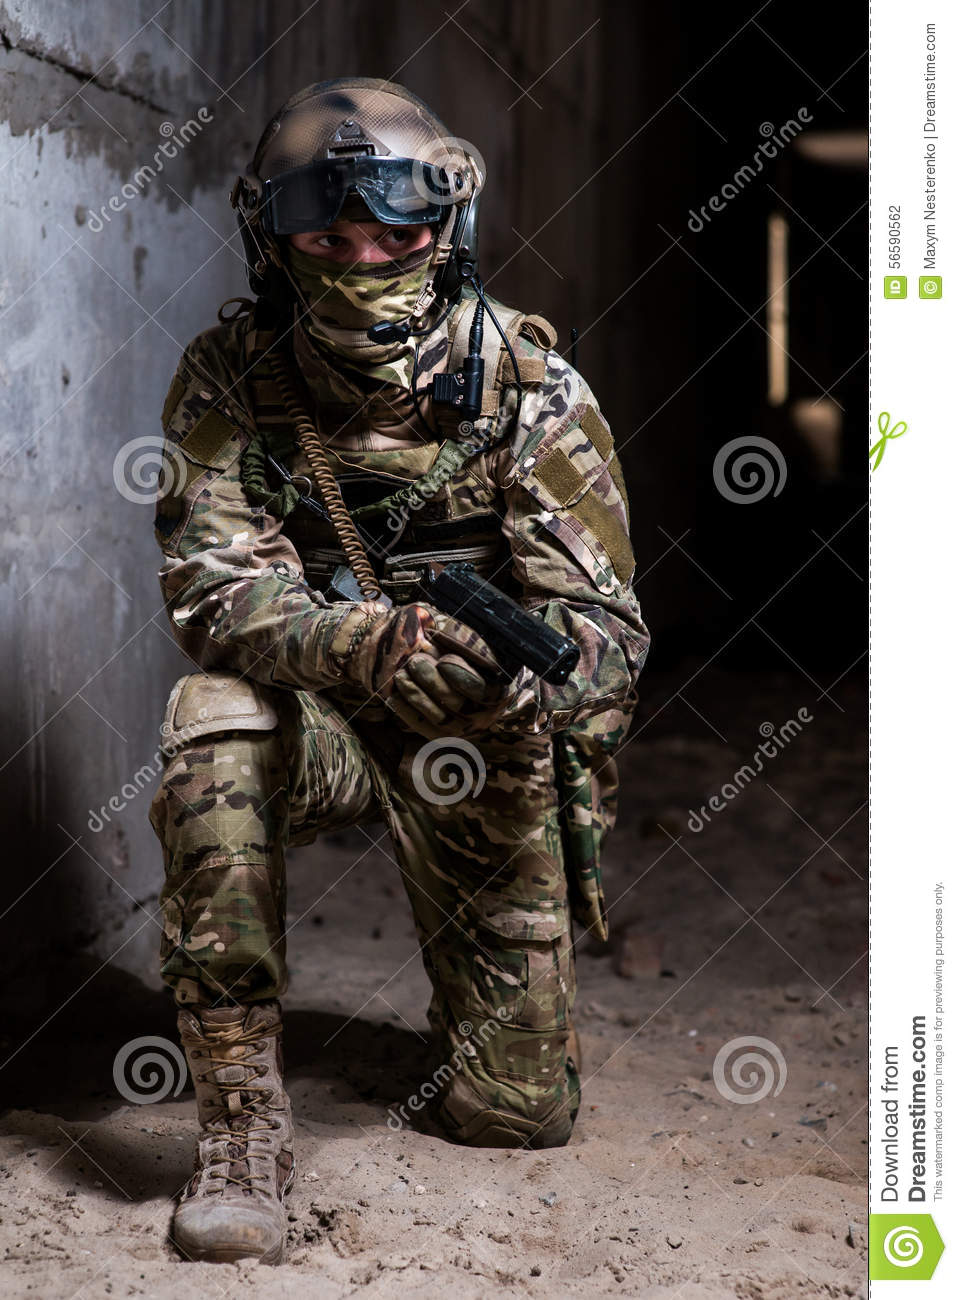 Military Security Equipment